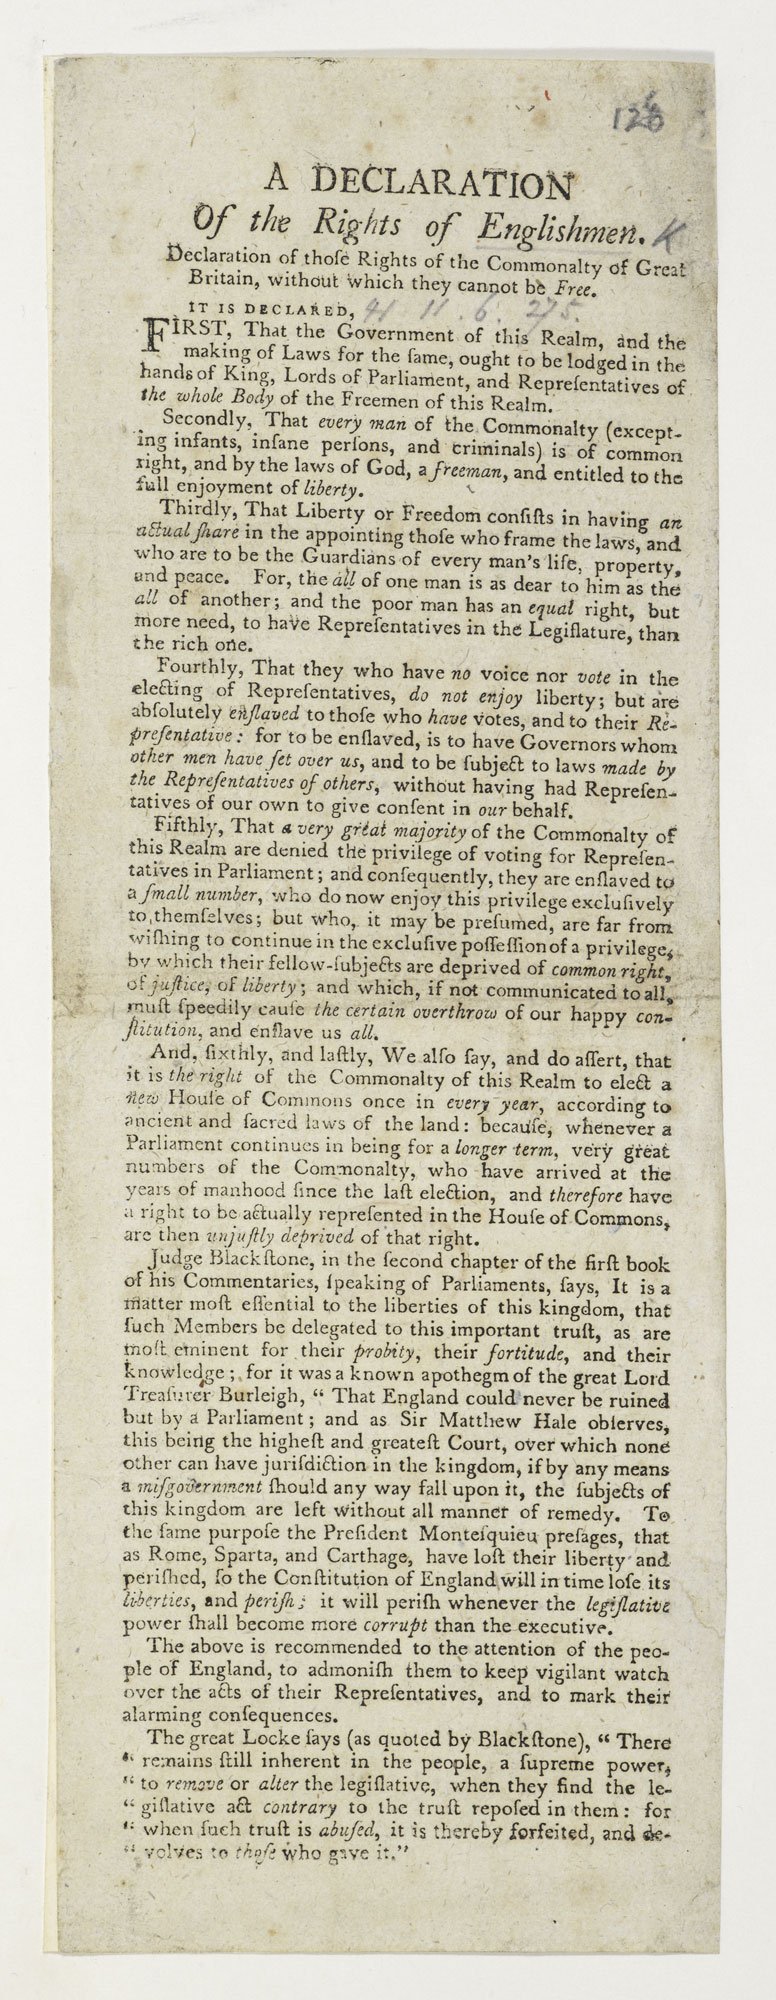 A declaration of the rights of Englishmen [page: single sheet]